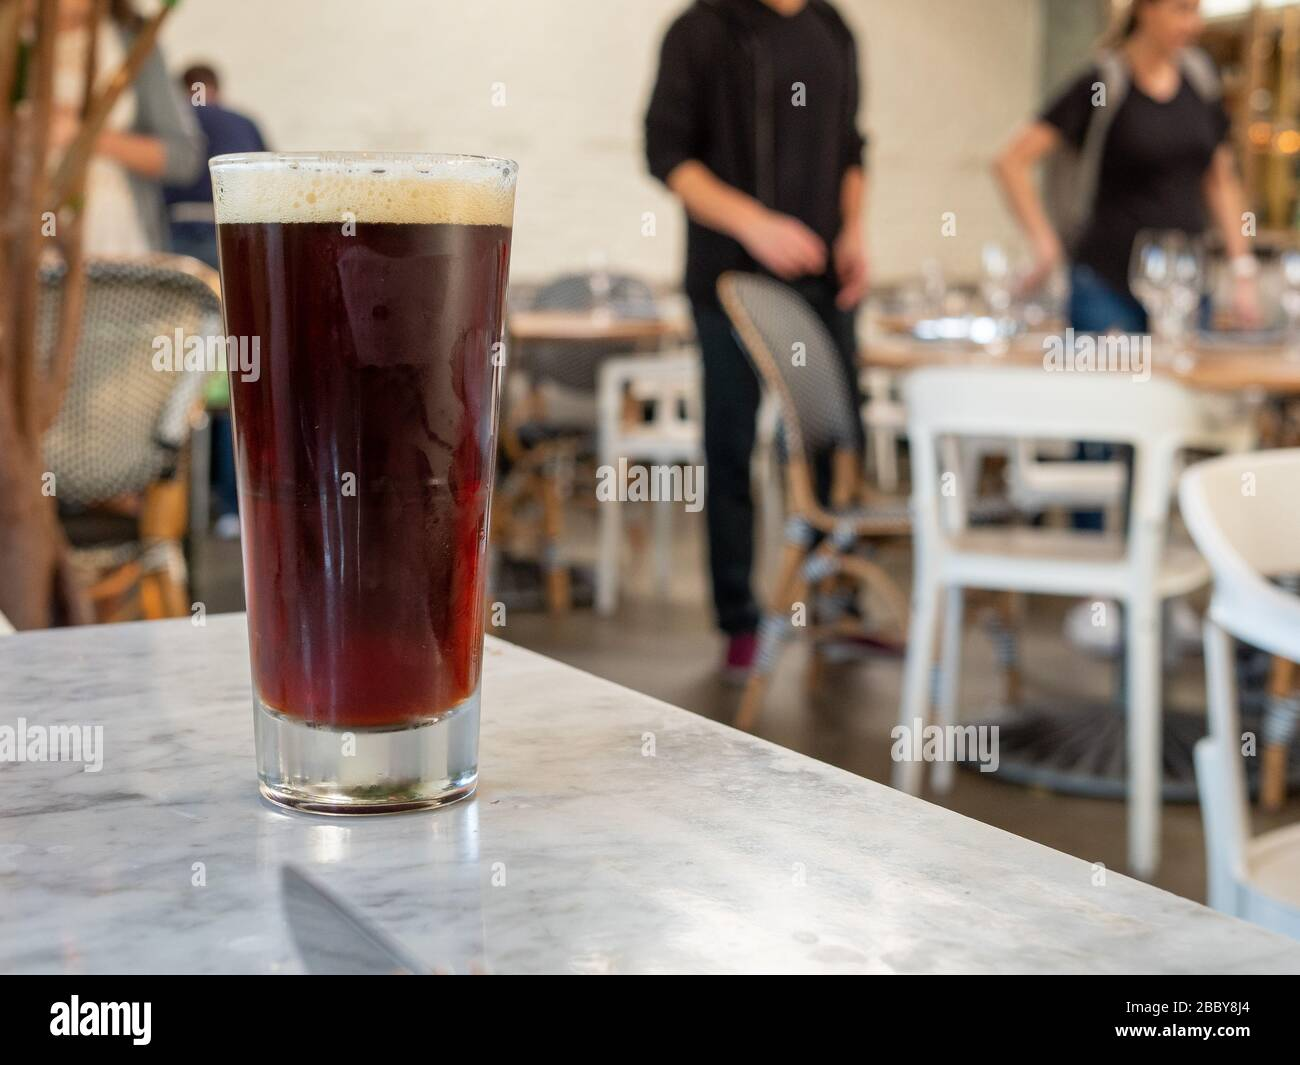 Dark stout beer sitting on table in restaurant with diners getting seated Stock Photo